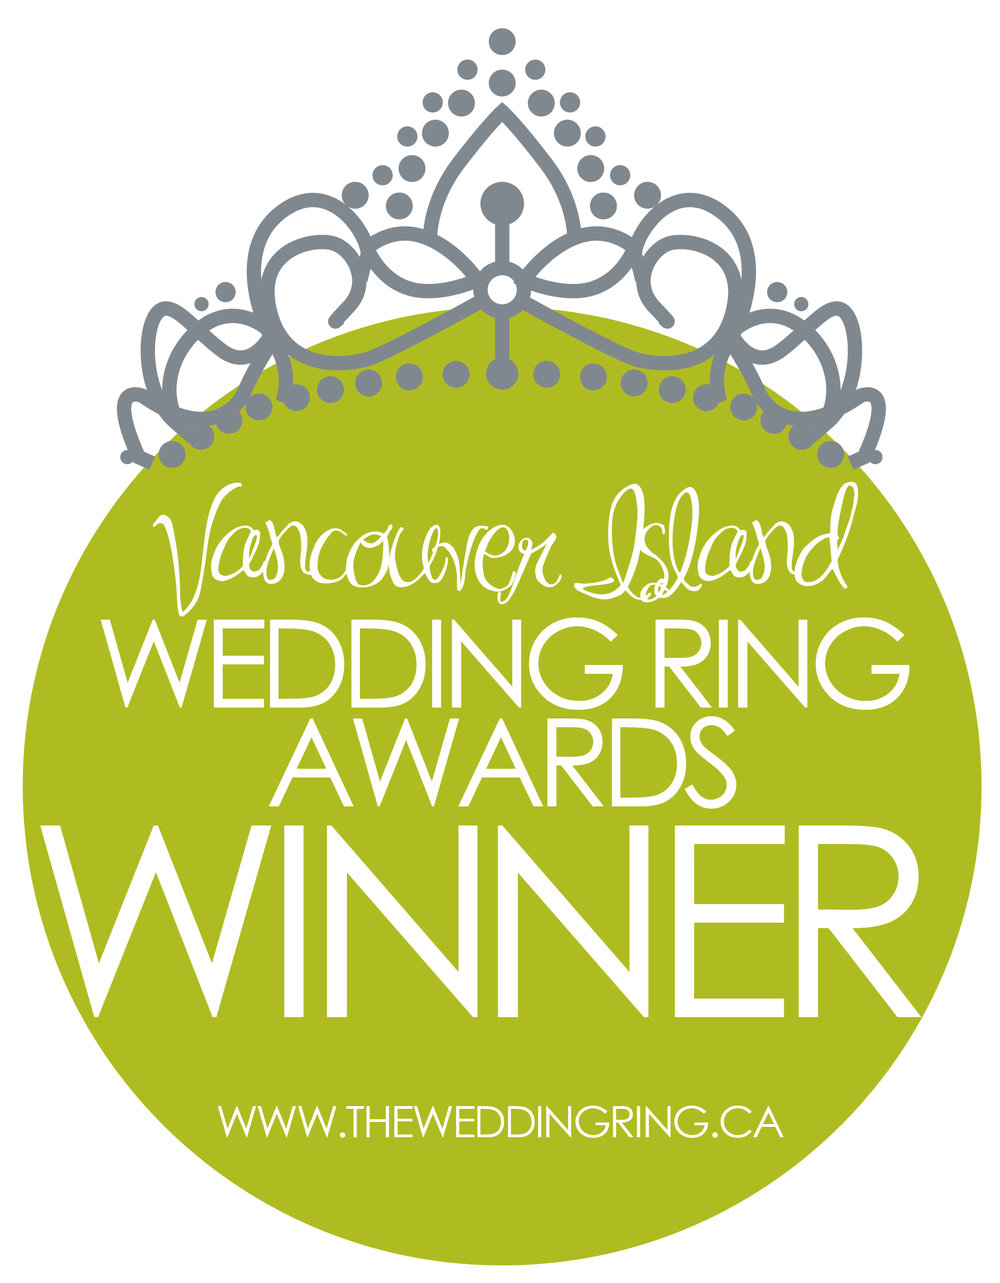 WeddingAwardsWinner-02.jpg